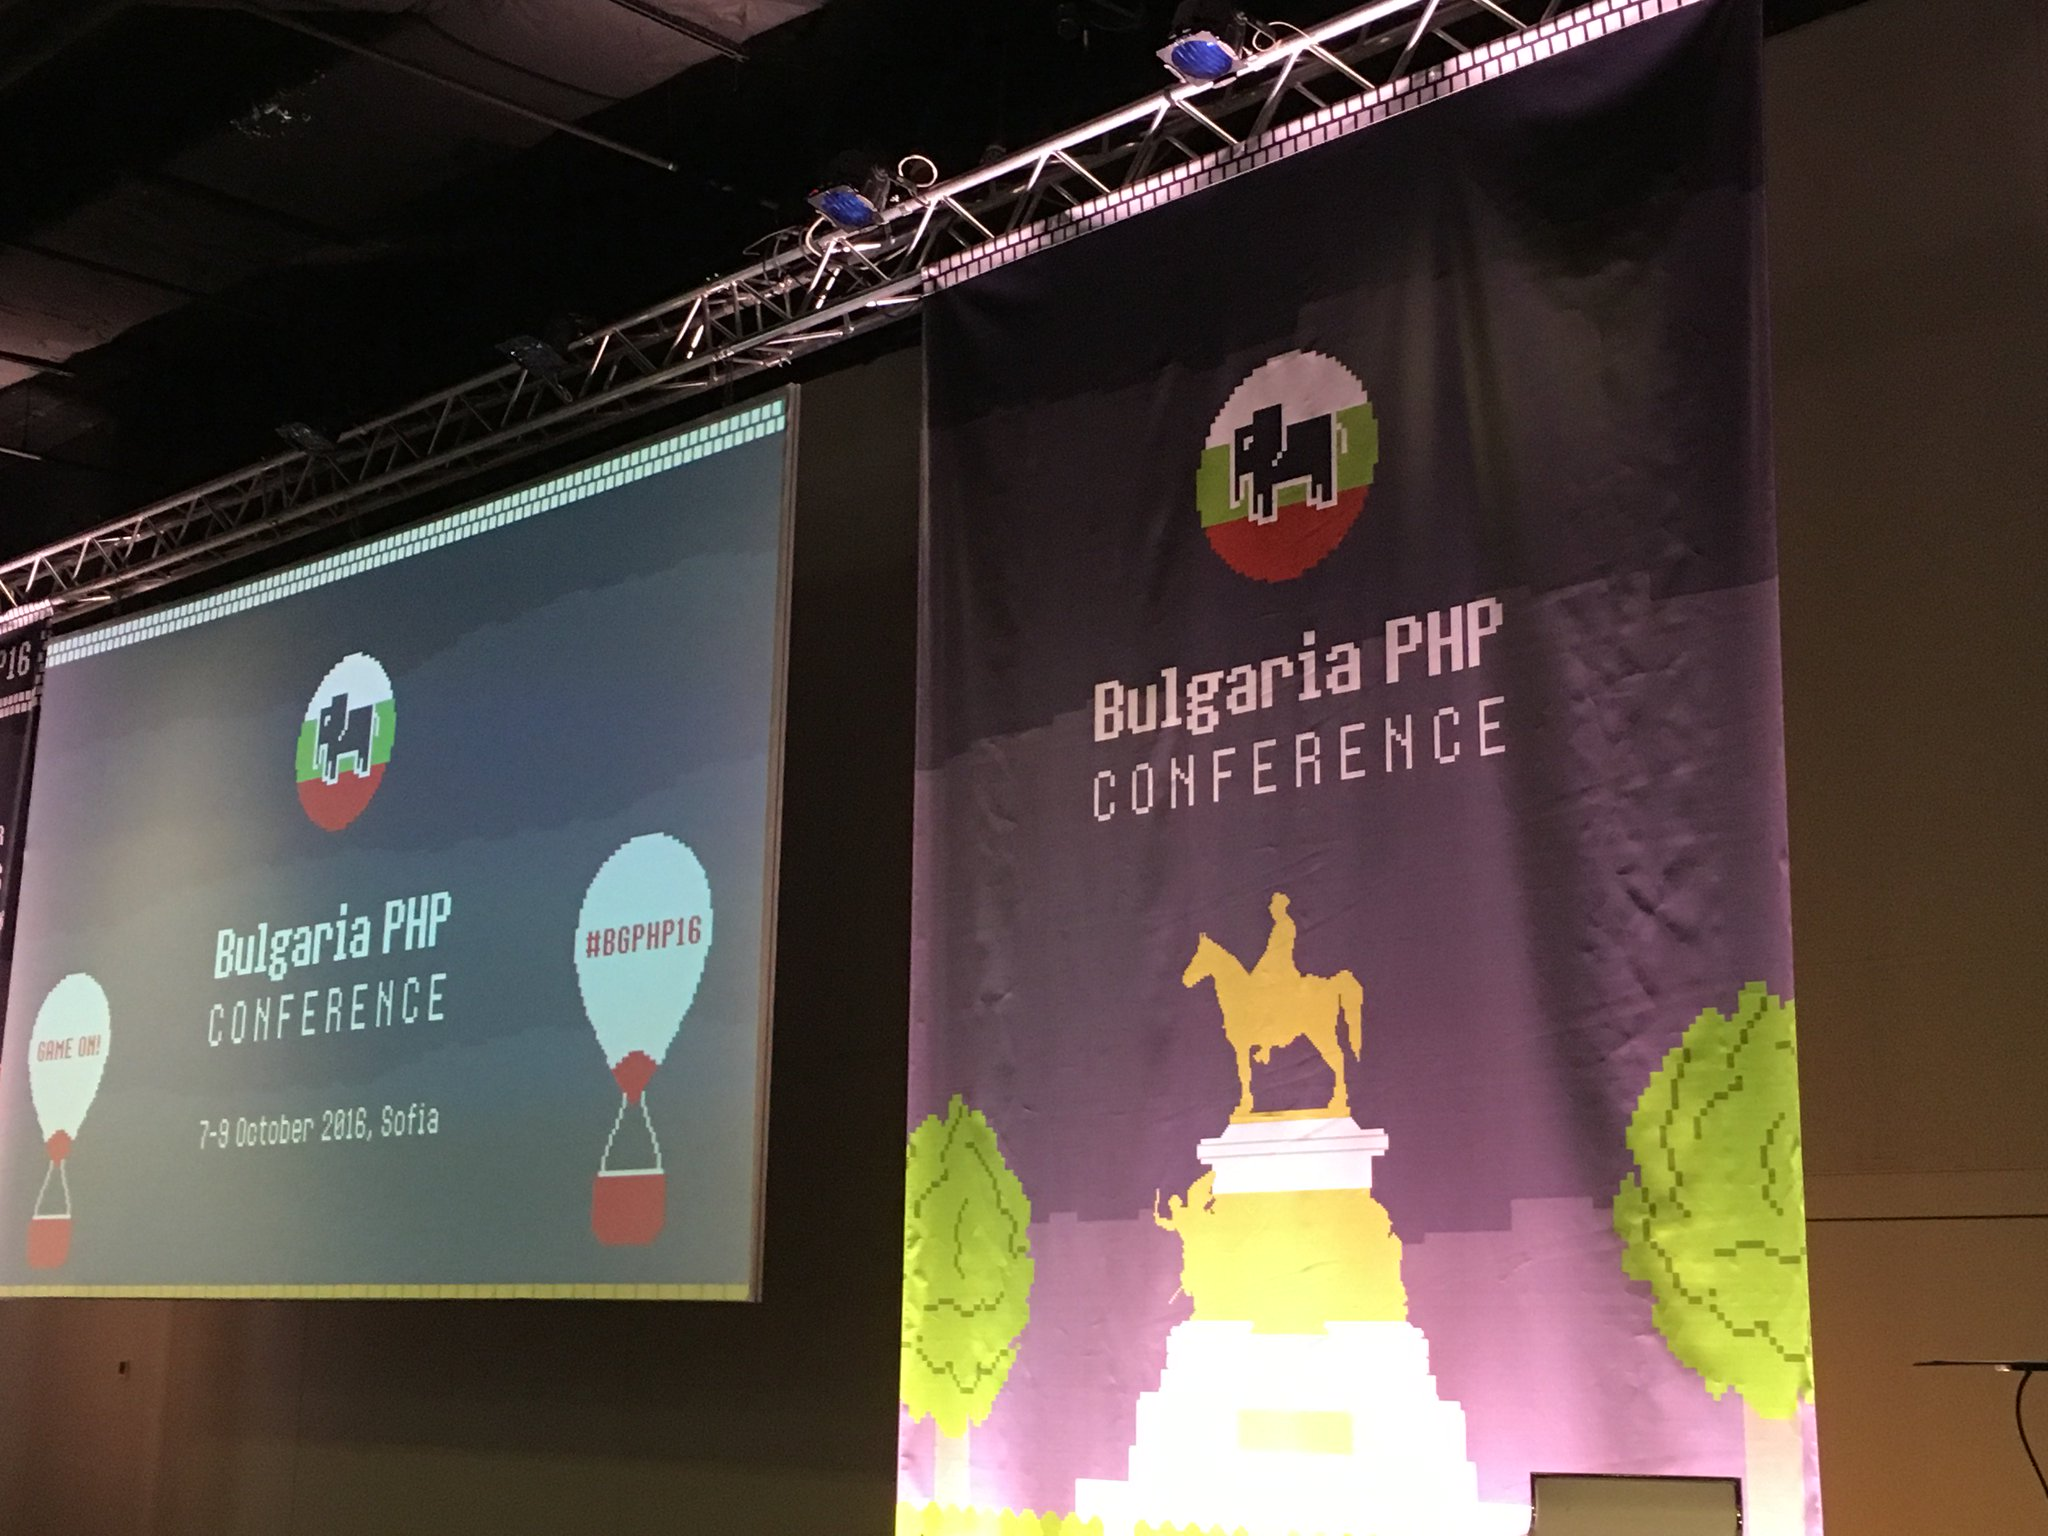 BGPHP 2016 stage just before the opening remarks